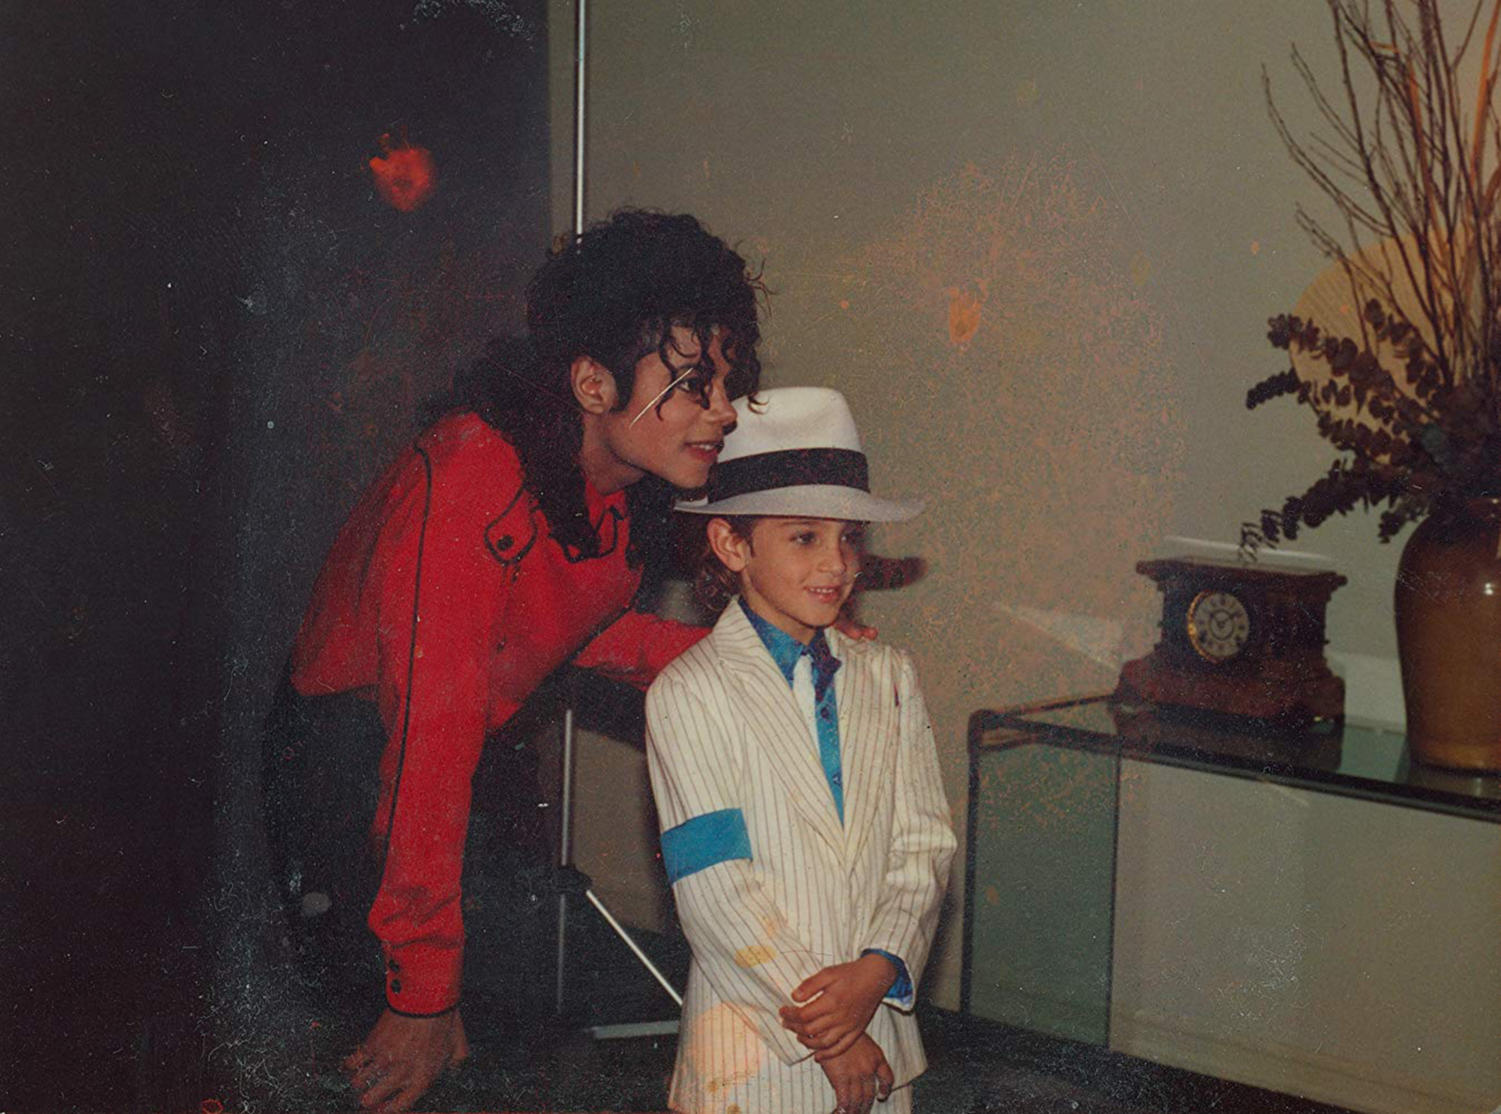 Michael Jackson and Wade Robson in